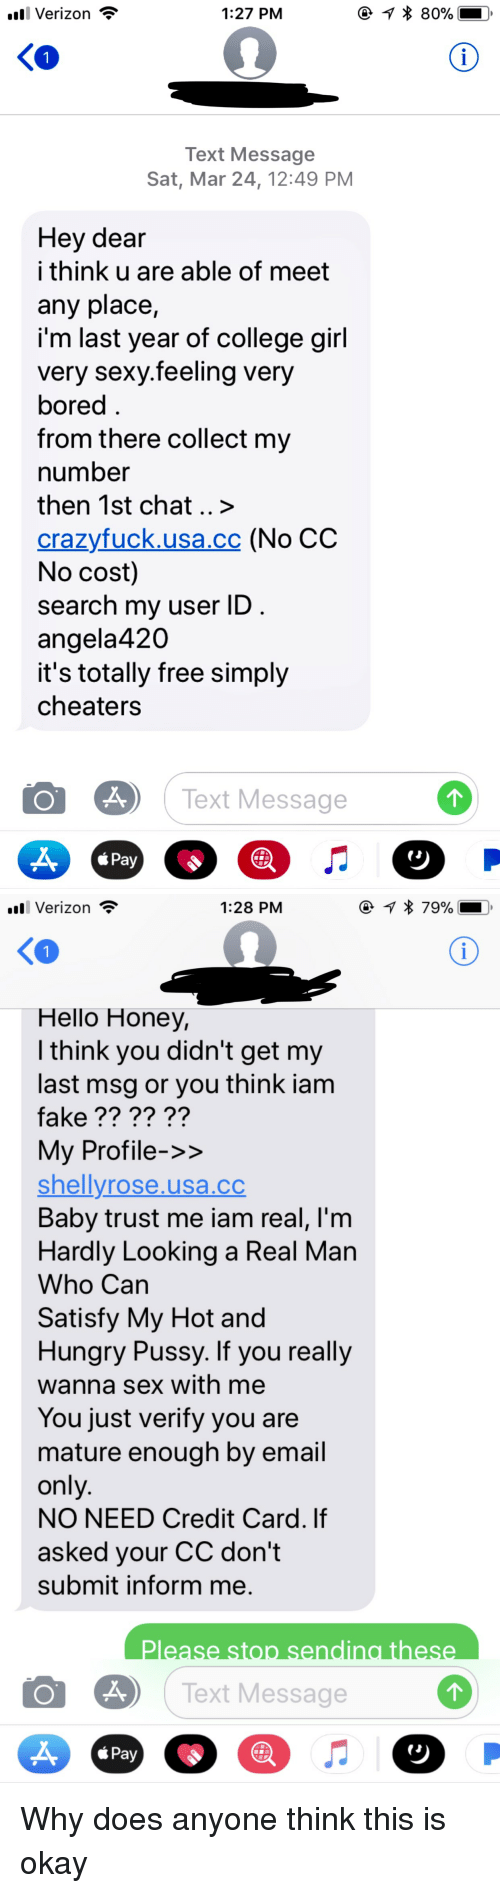 Free sexy text chat